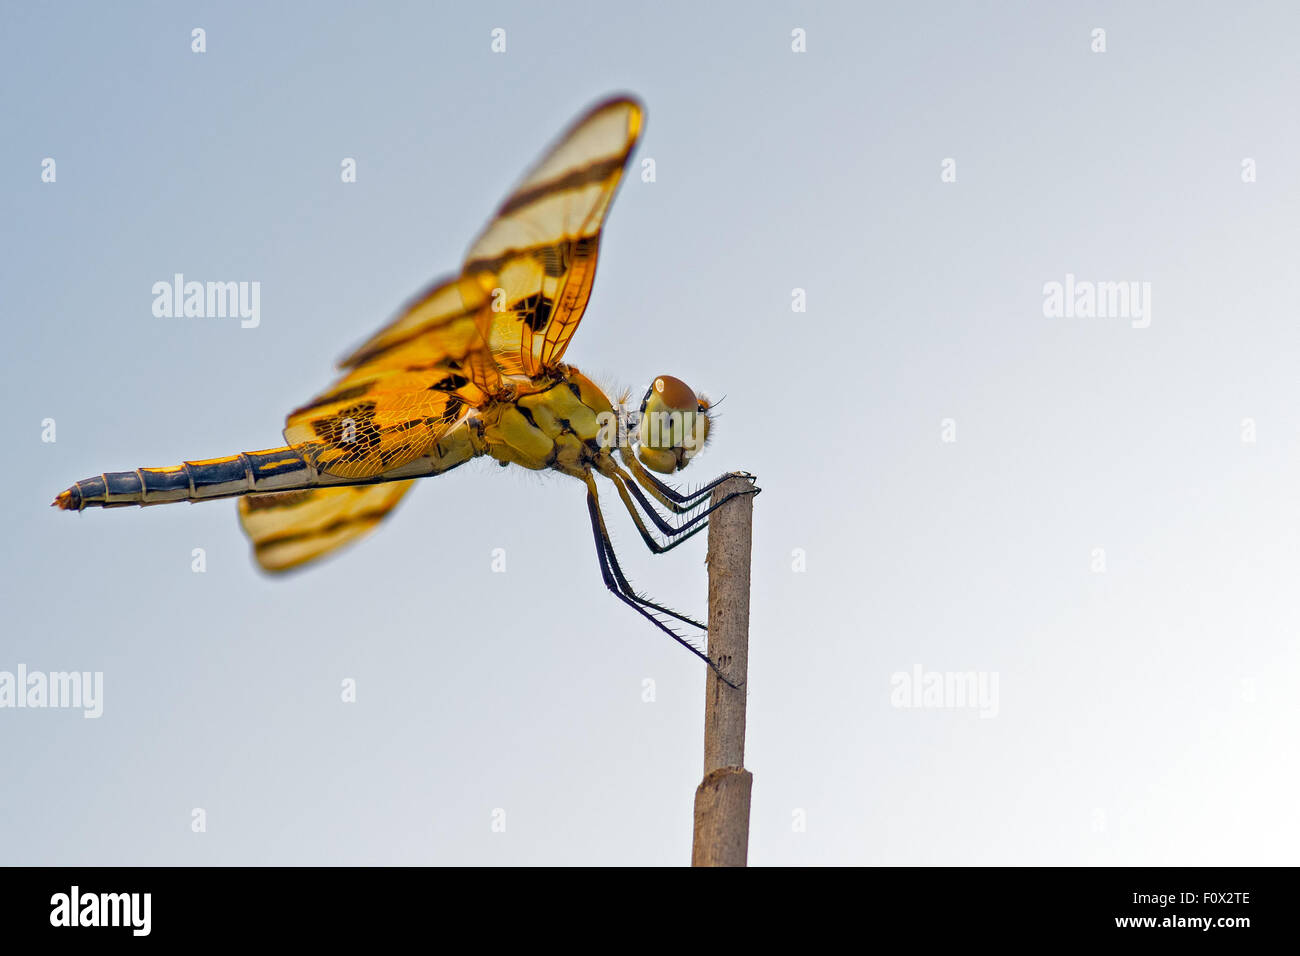 Halloween Pennant Dragonfly - Stock Image